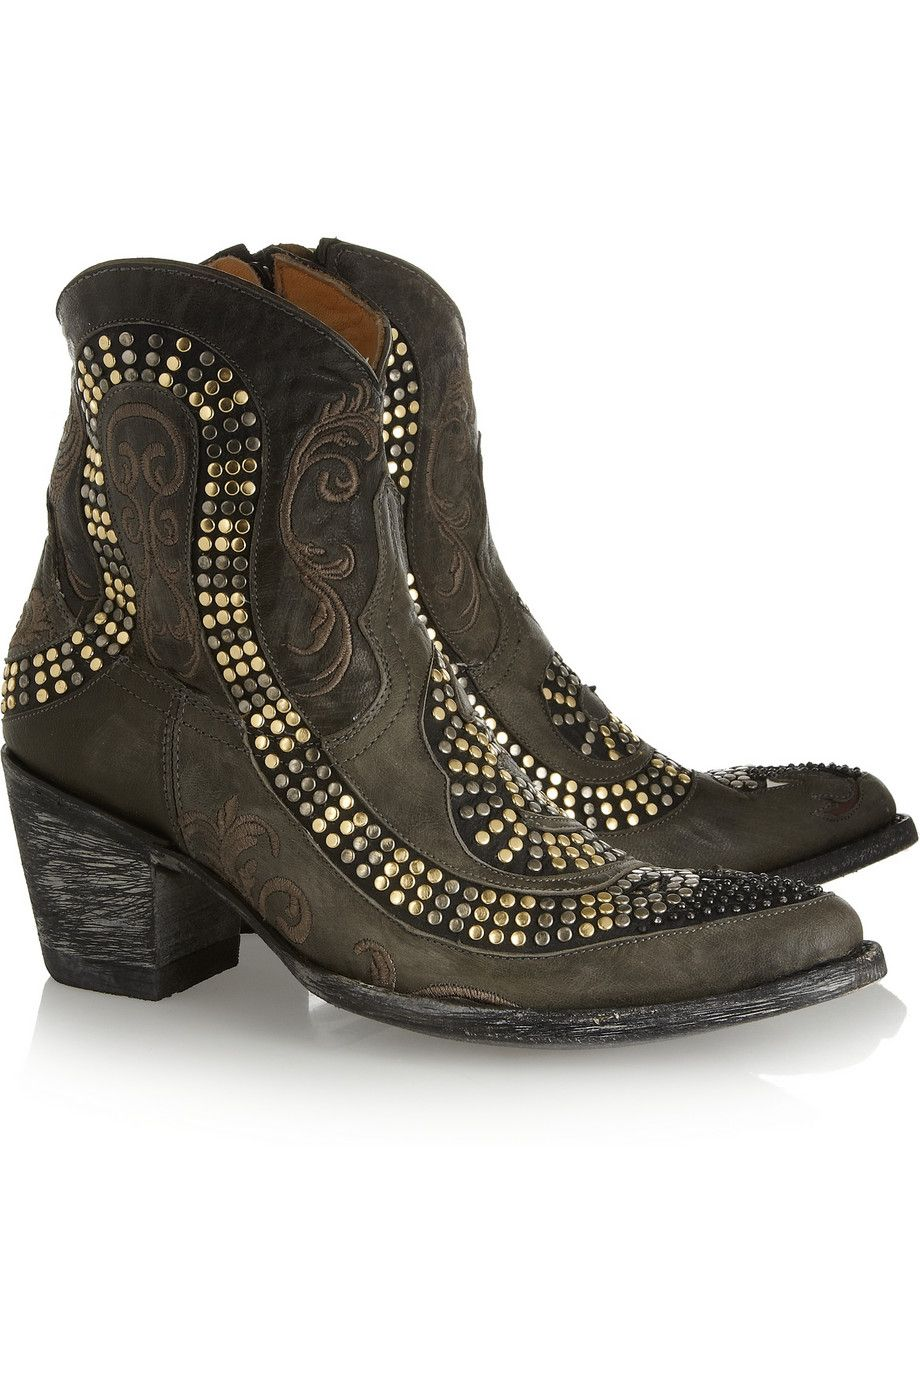 selezione premium f5778 5625a Mexicana   Snake studded distressed leather ankle boots ...